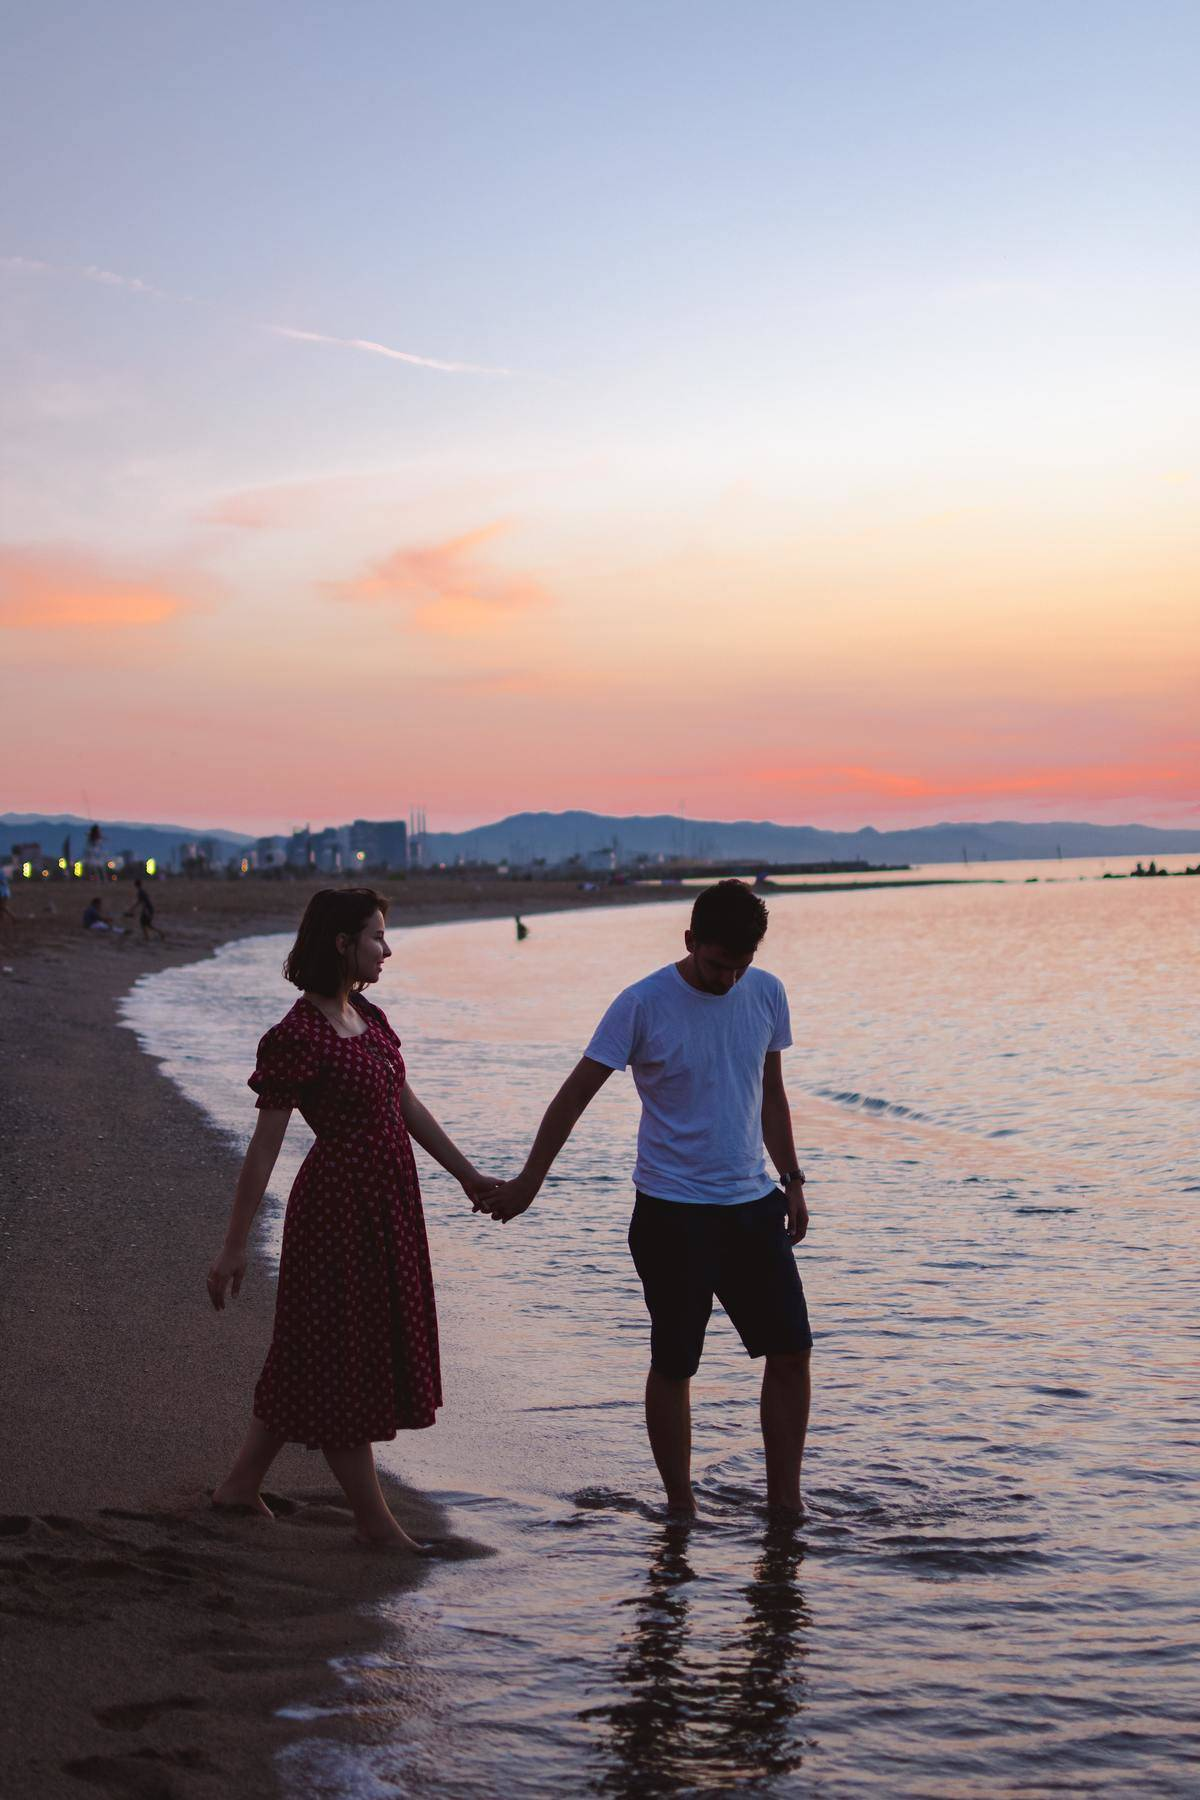 man and woman walking shoreline holding hands